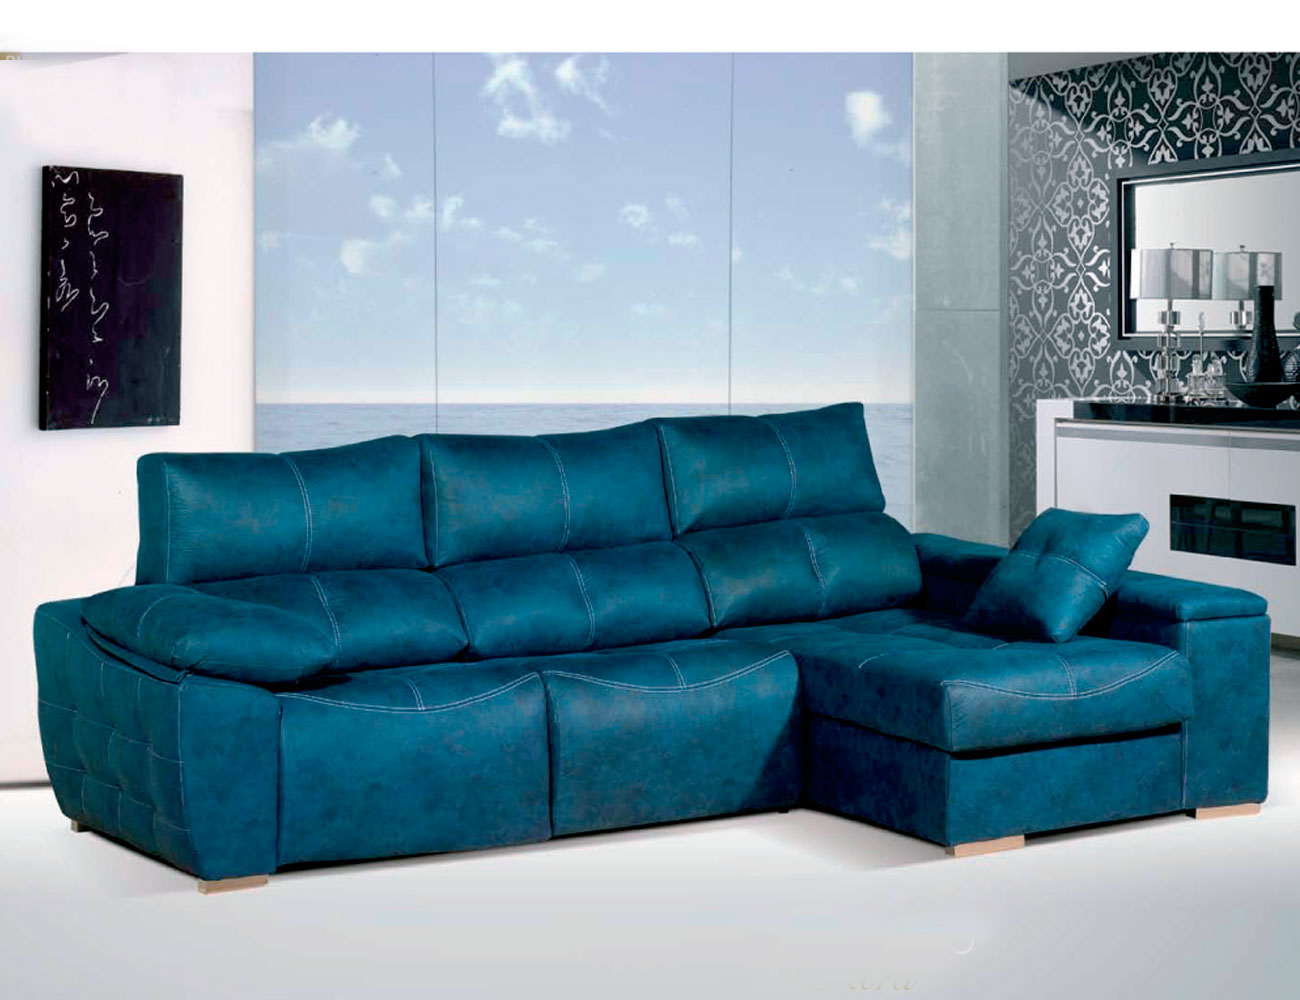 Sofa chaiselongue relax 2 motores anti manchas turquesa8